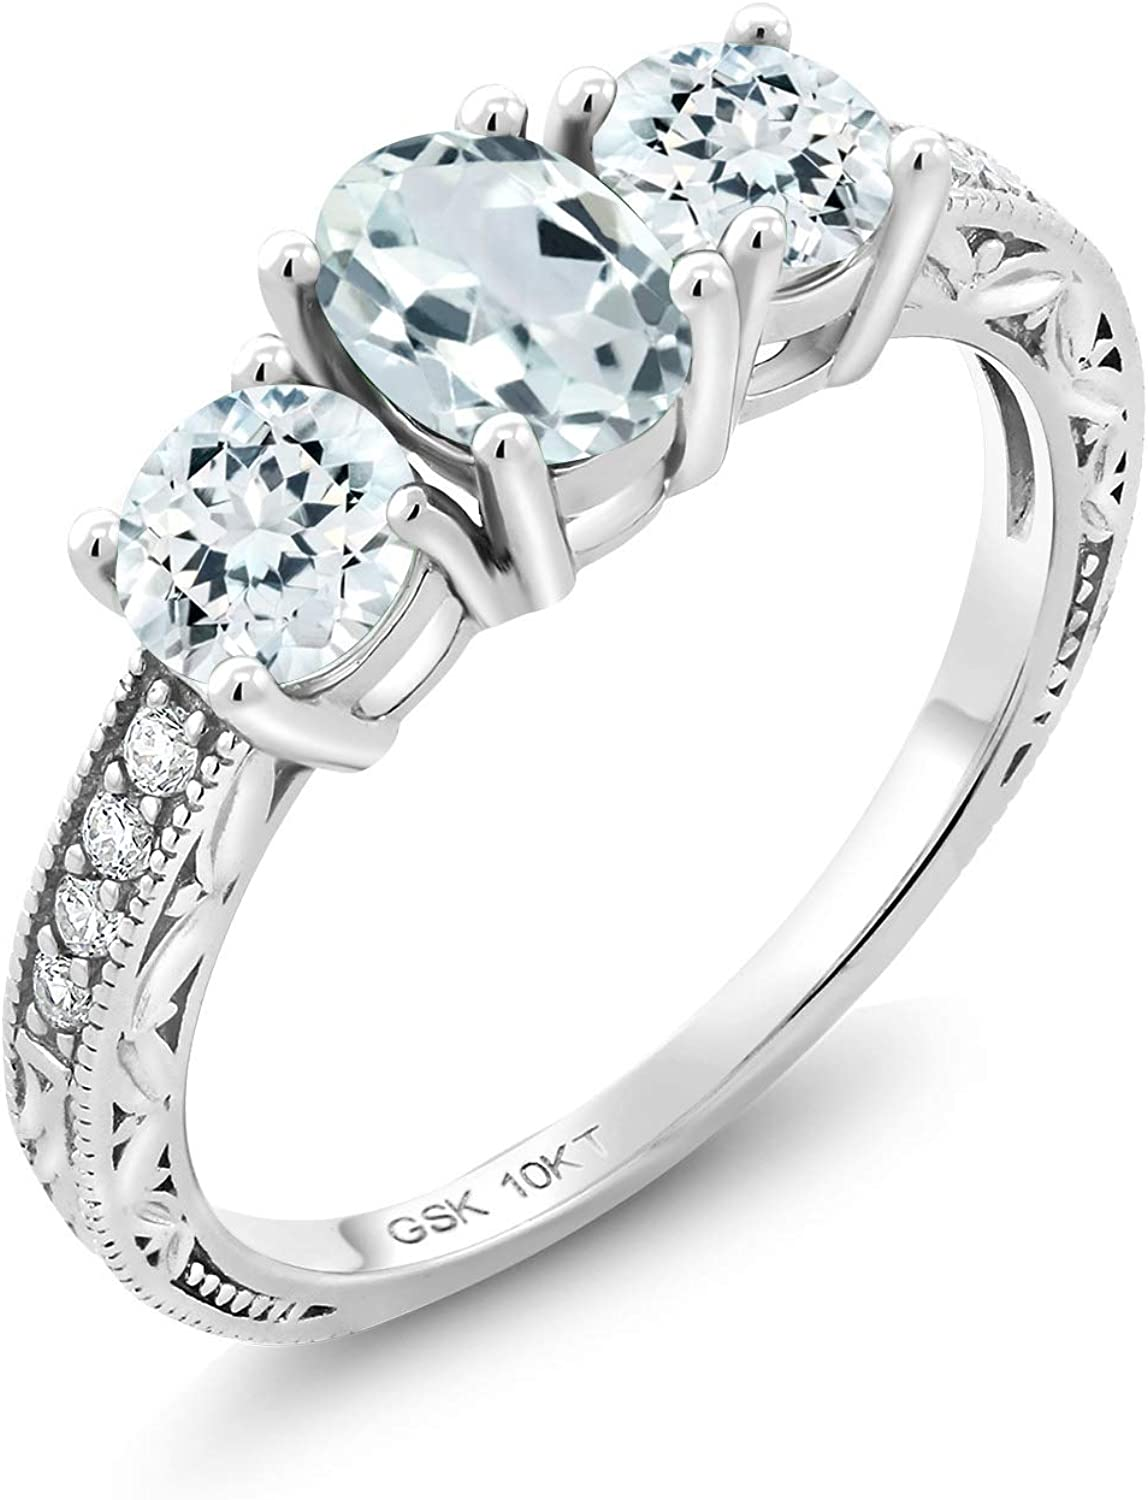 Gem Stone King 10K White Gold Sky Blue Aquamarine and Lab Grown Diamond 3  Stone Women's Engagement Ring (1.79 Cttw, Available in size 5, 6, 7, 8, 9)  | Amazon.com